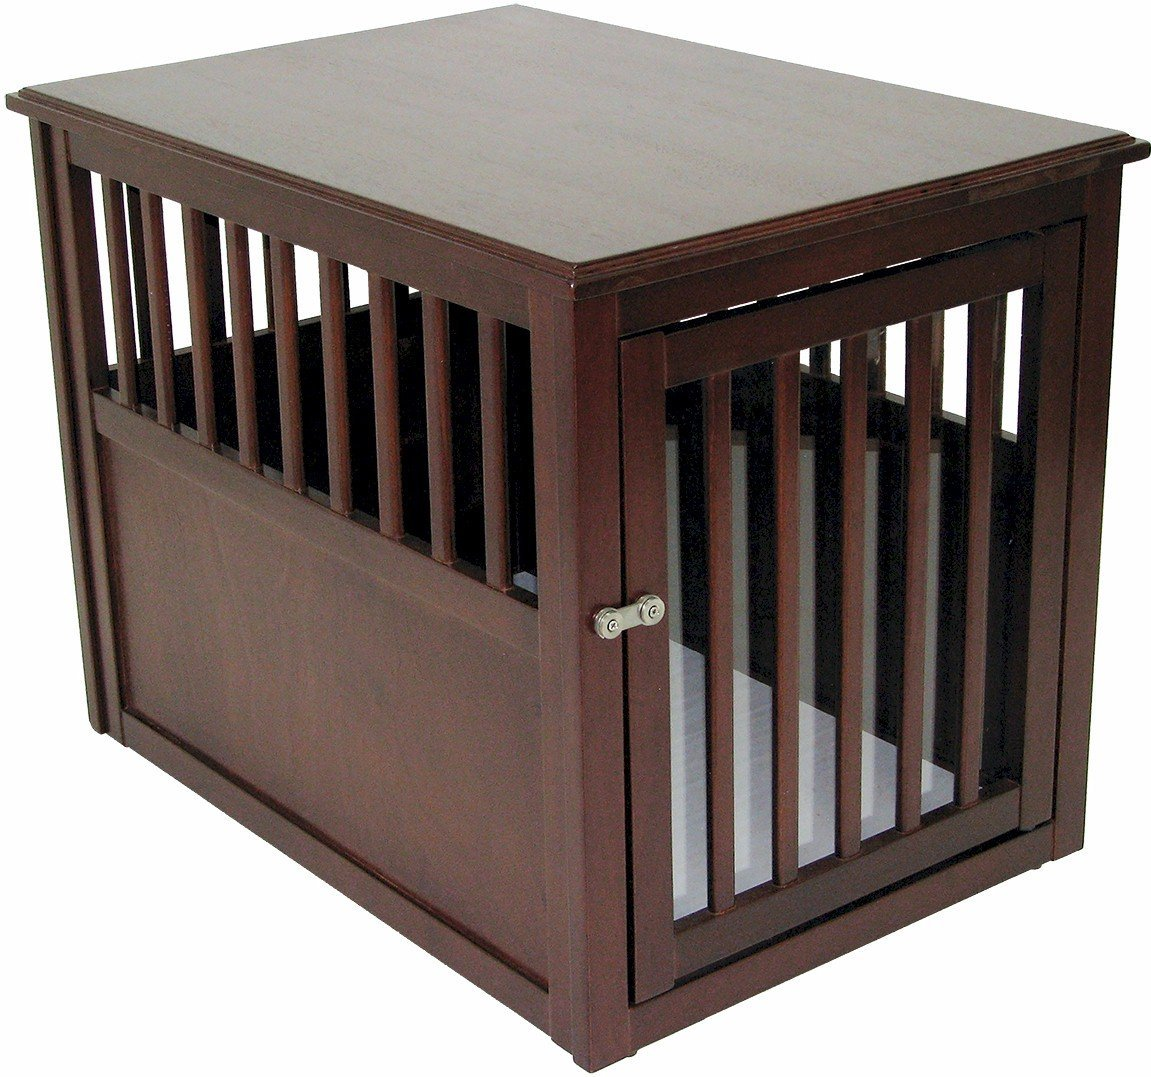 amazoncom crown pet products pet crate wood dog crate furniture end table medium size with espresso finish pet supplies - Wooden Dog Crate End Tables